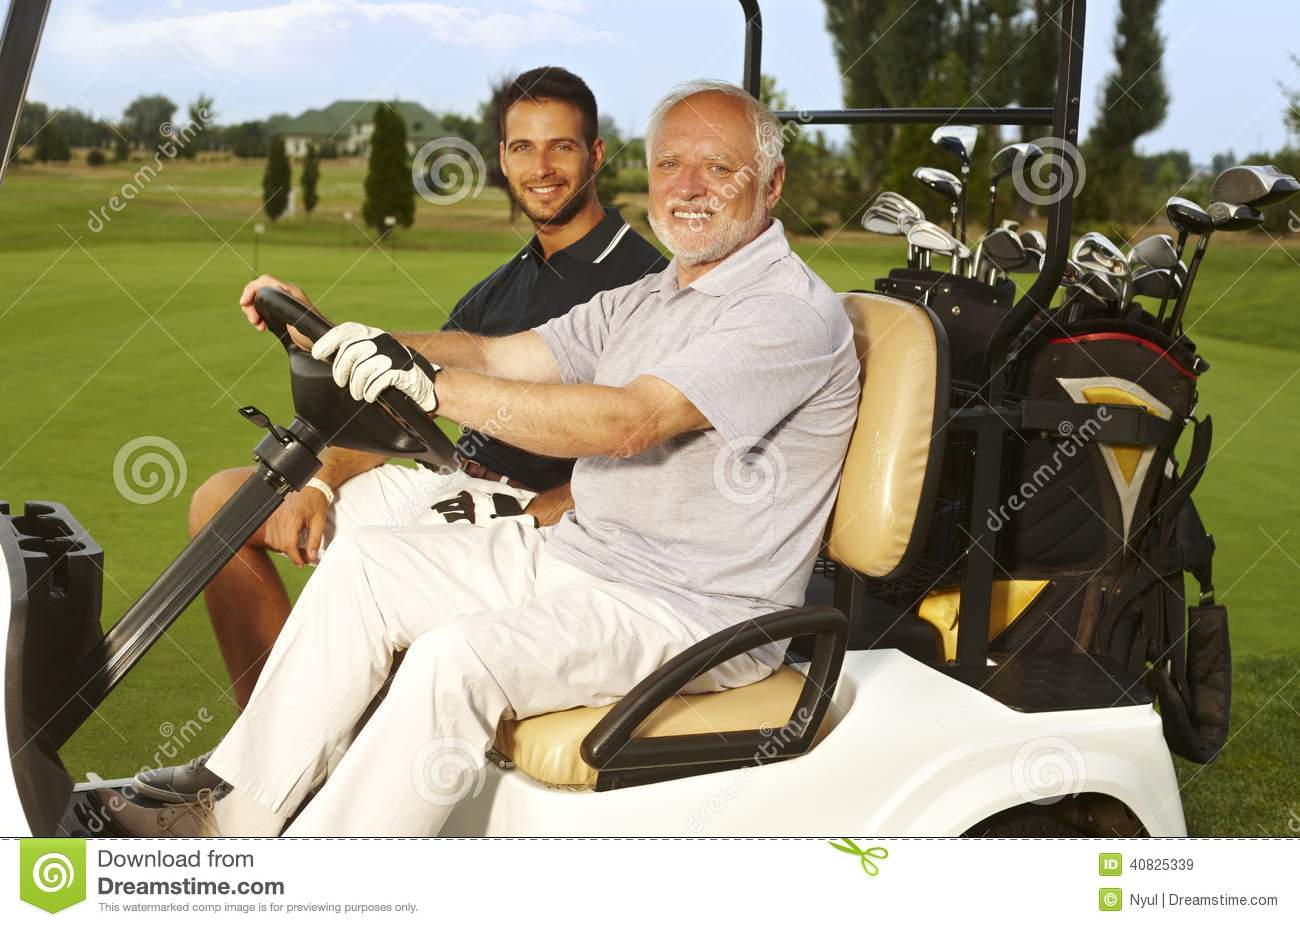 Driver Golf Club Stock Photos and Pictures   Getty Images